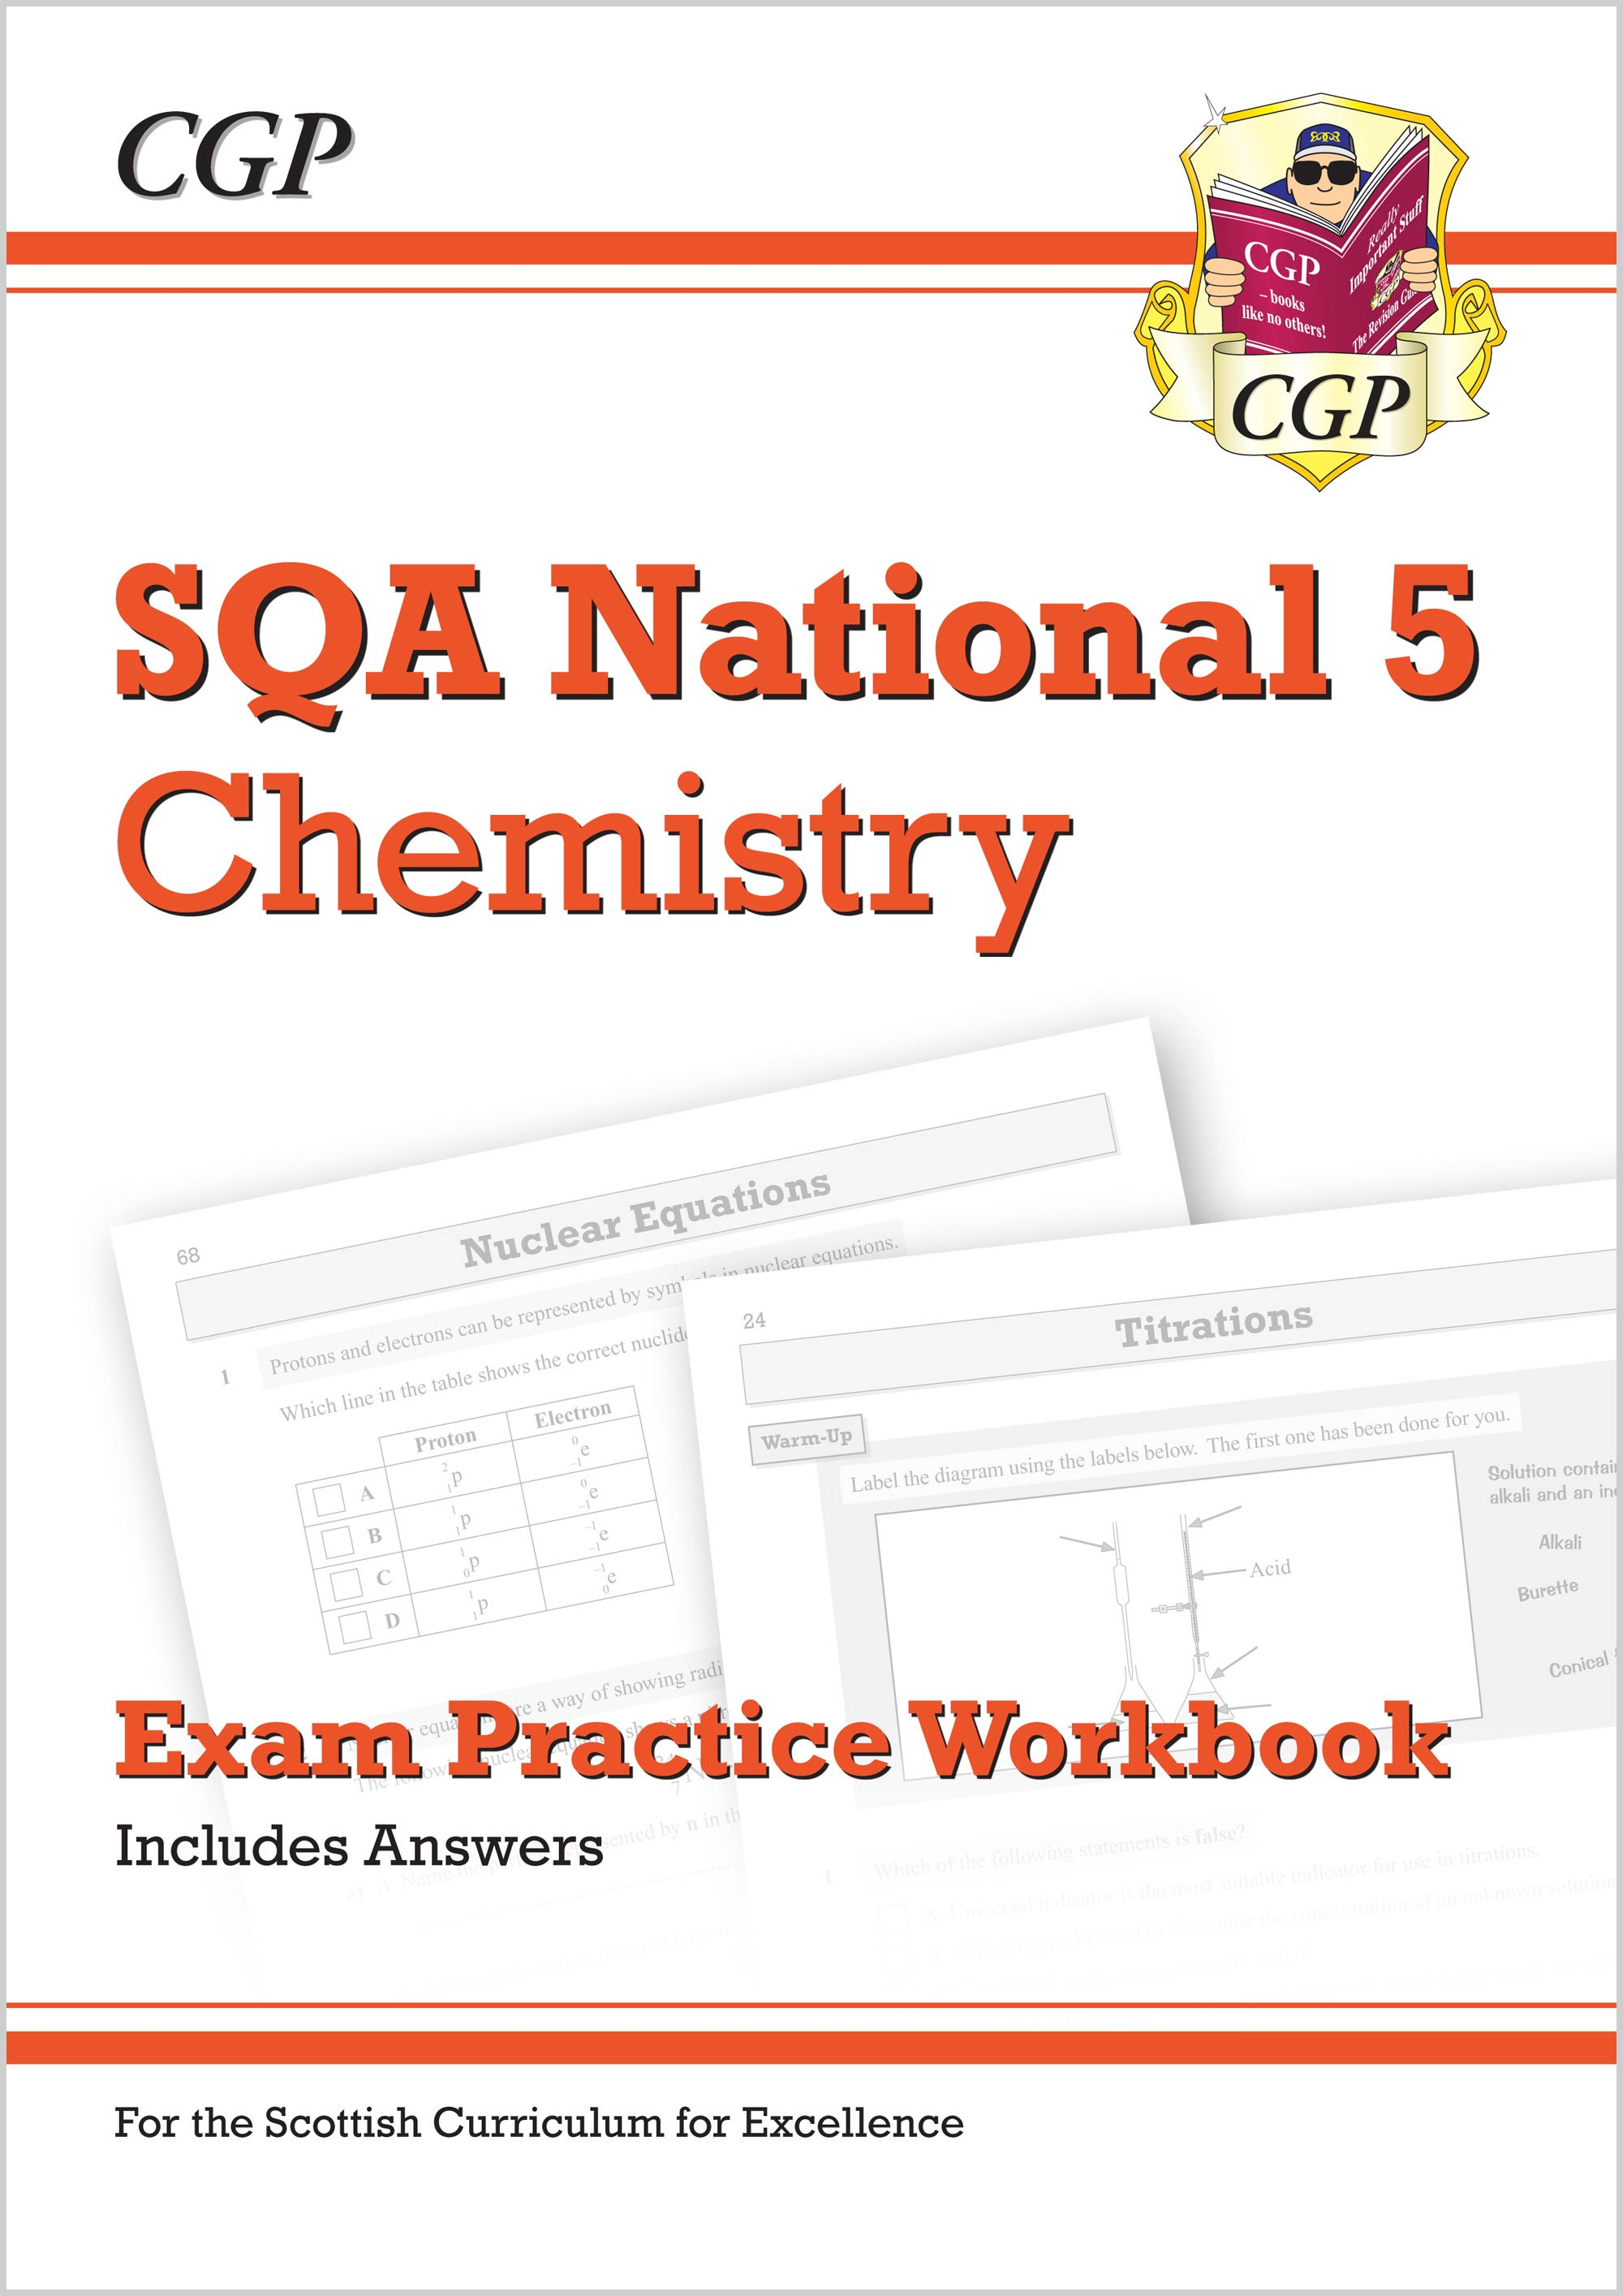 CZQ41 - National 5 Chemistry: SQA Exam Practice Workbook - includes Answers